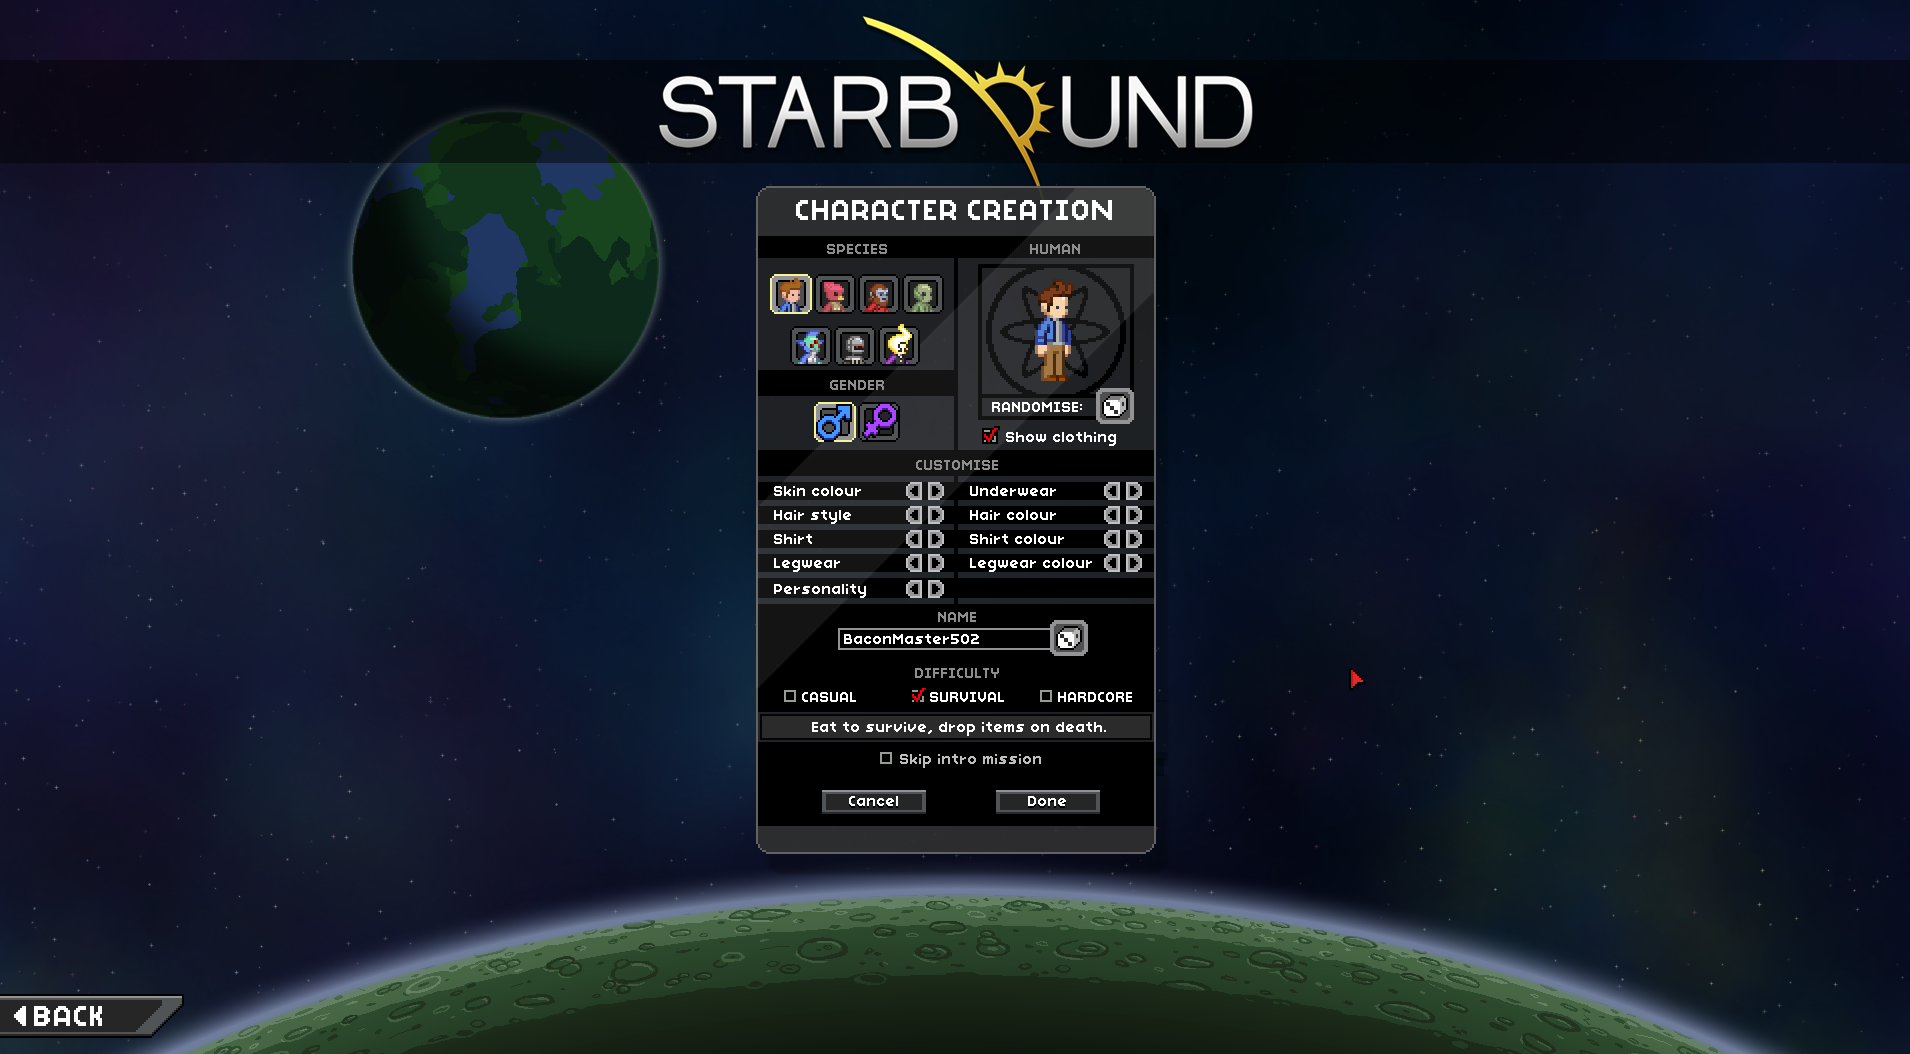 Stupendous Guide For The Basics To The Video Game Starbound By Chucklefish Wiring Cloud Brecesaoduqqnet